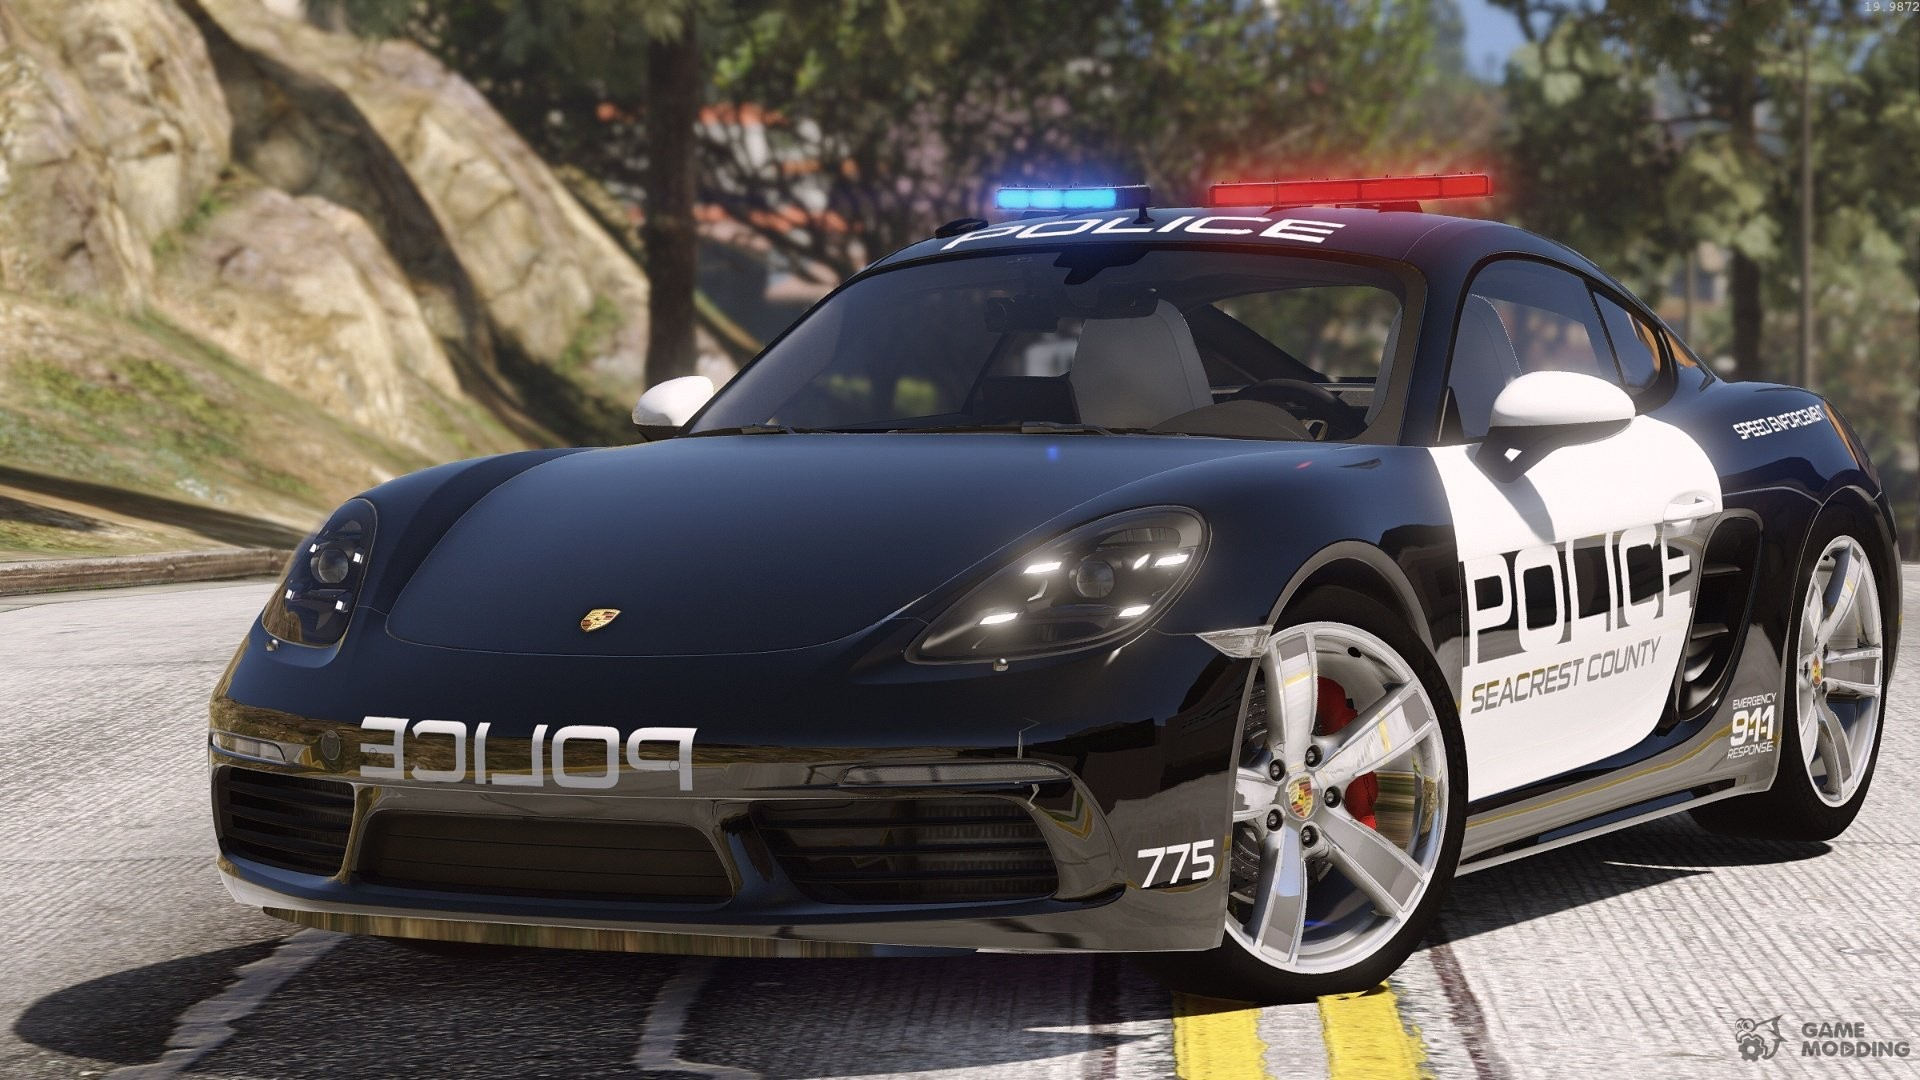 Porsche Cayman S 718 Hot Pursuit Police For Gta 5